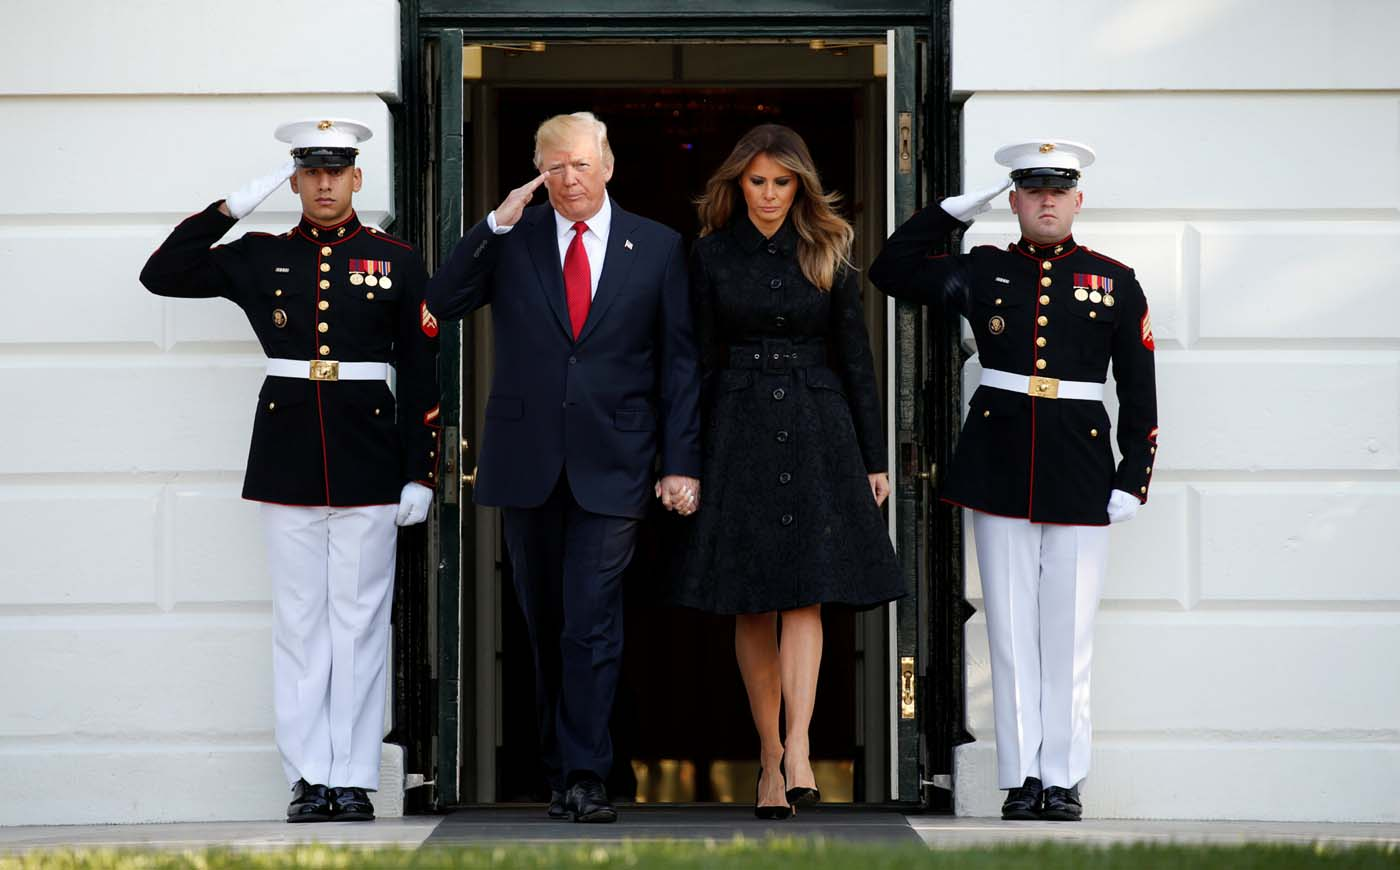 U.S. President Donald Trump and first lady Melania Trump arrive to observe a moment of silence in remembrance of those lost in the 9/11 attacks at the White House in Washington, U.S. September 11, 2017. REUTERS/Kevin Lamarque